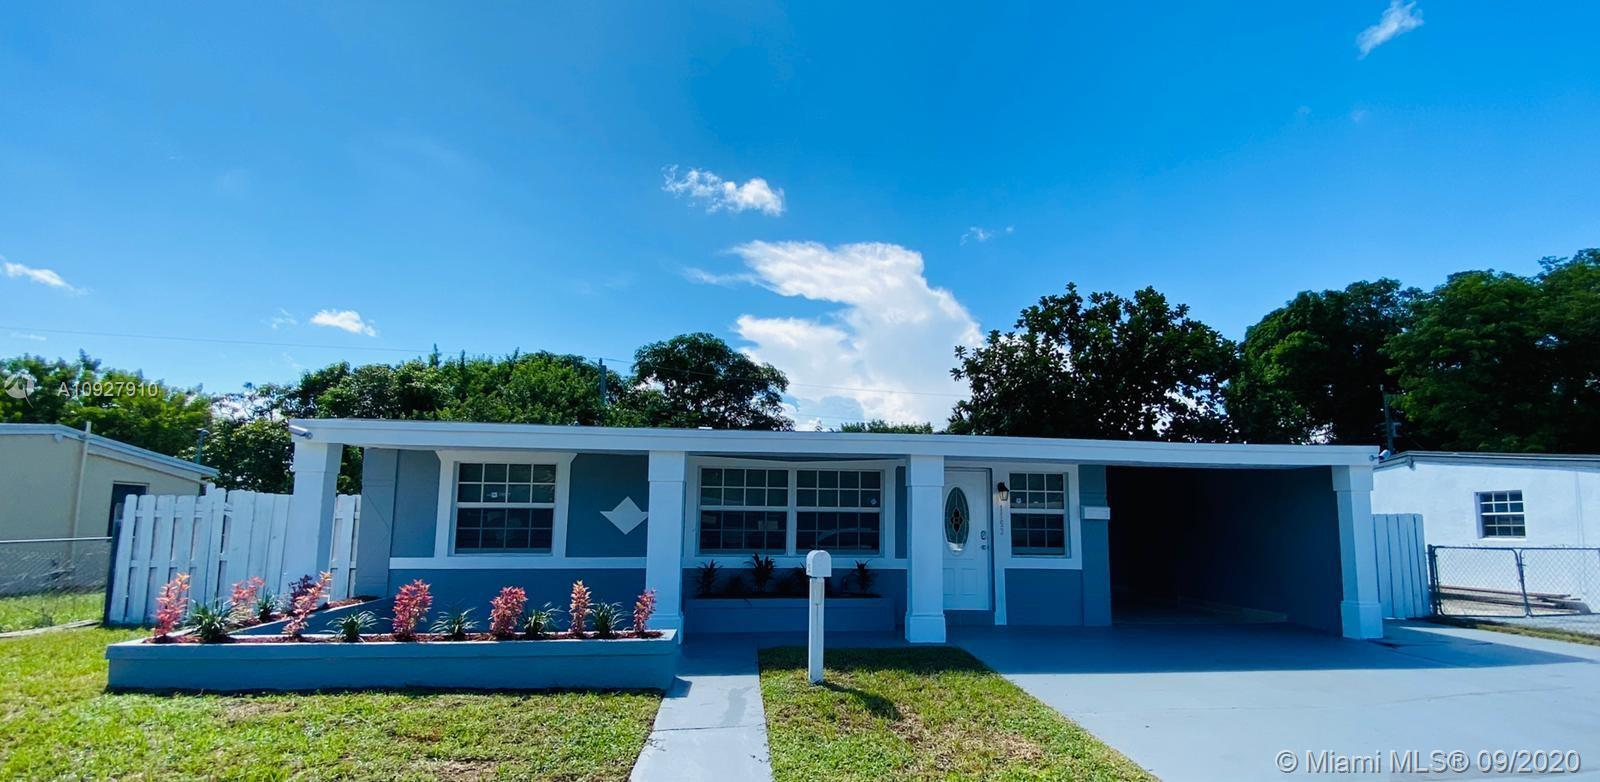 BEAUTIFULLY AND COMPLETELY RENOVATED SINGLE FAMILY HOME IN Pompano Beach!!!!!!